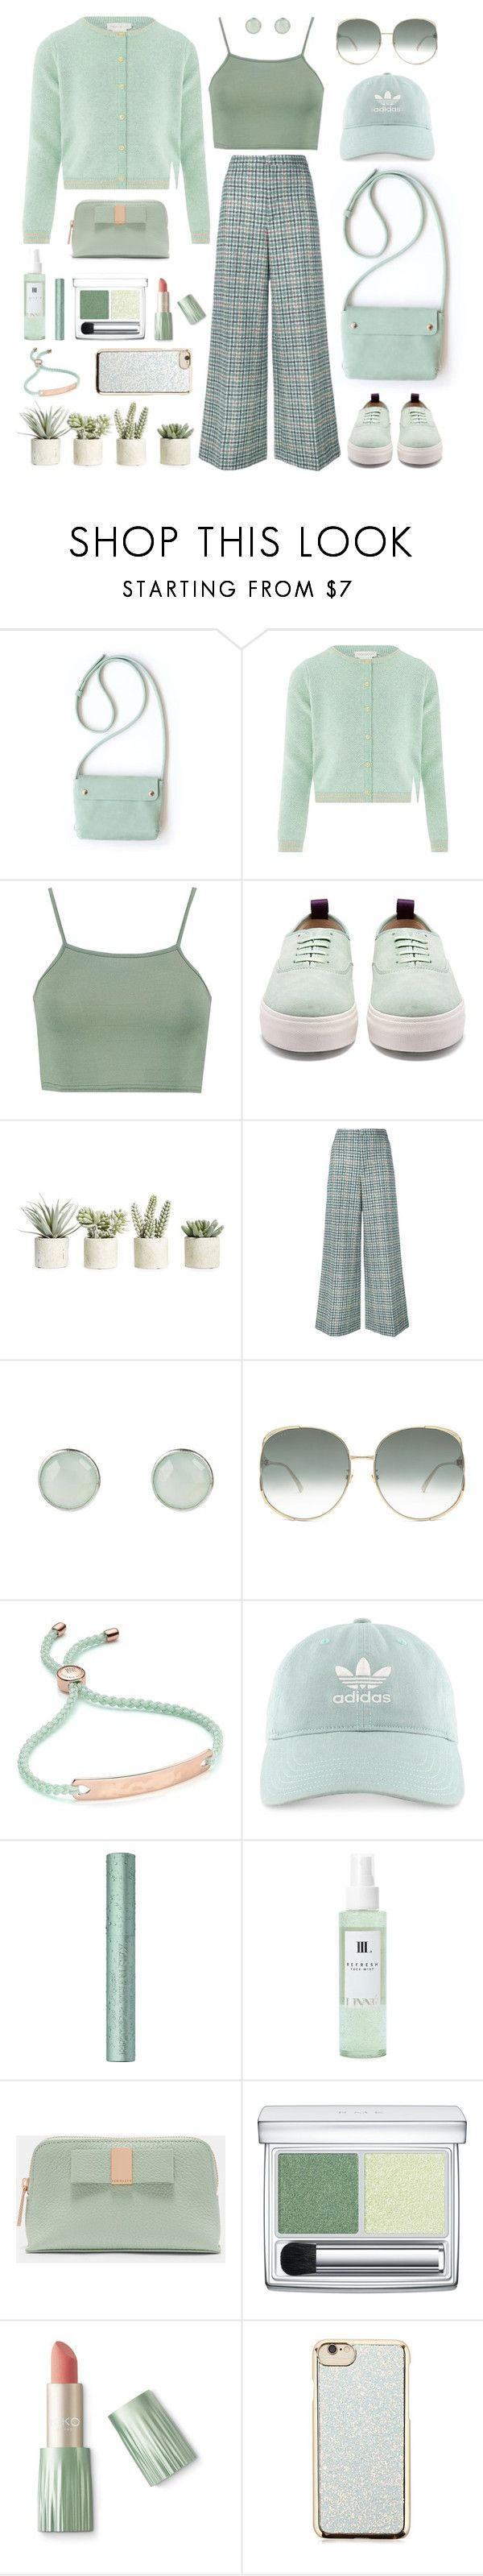 """All about Mint Colour"" by orrinn ❤ liked on Polyvore featuring Monsoon, Boohoo, Eytys, Allstate Floral, Isabel Marant, Gucci, Monica Vinader, adidas, Linne and Ted Baker"